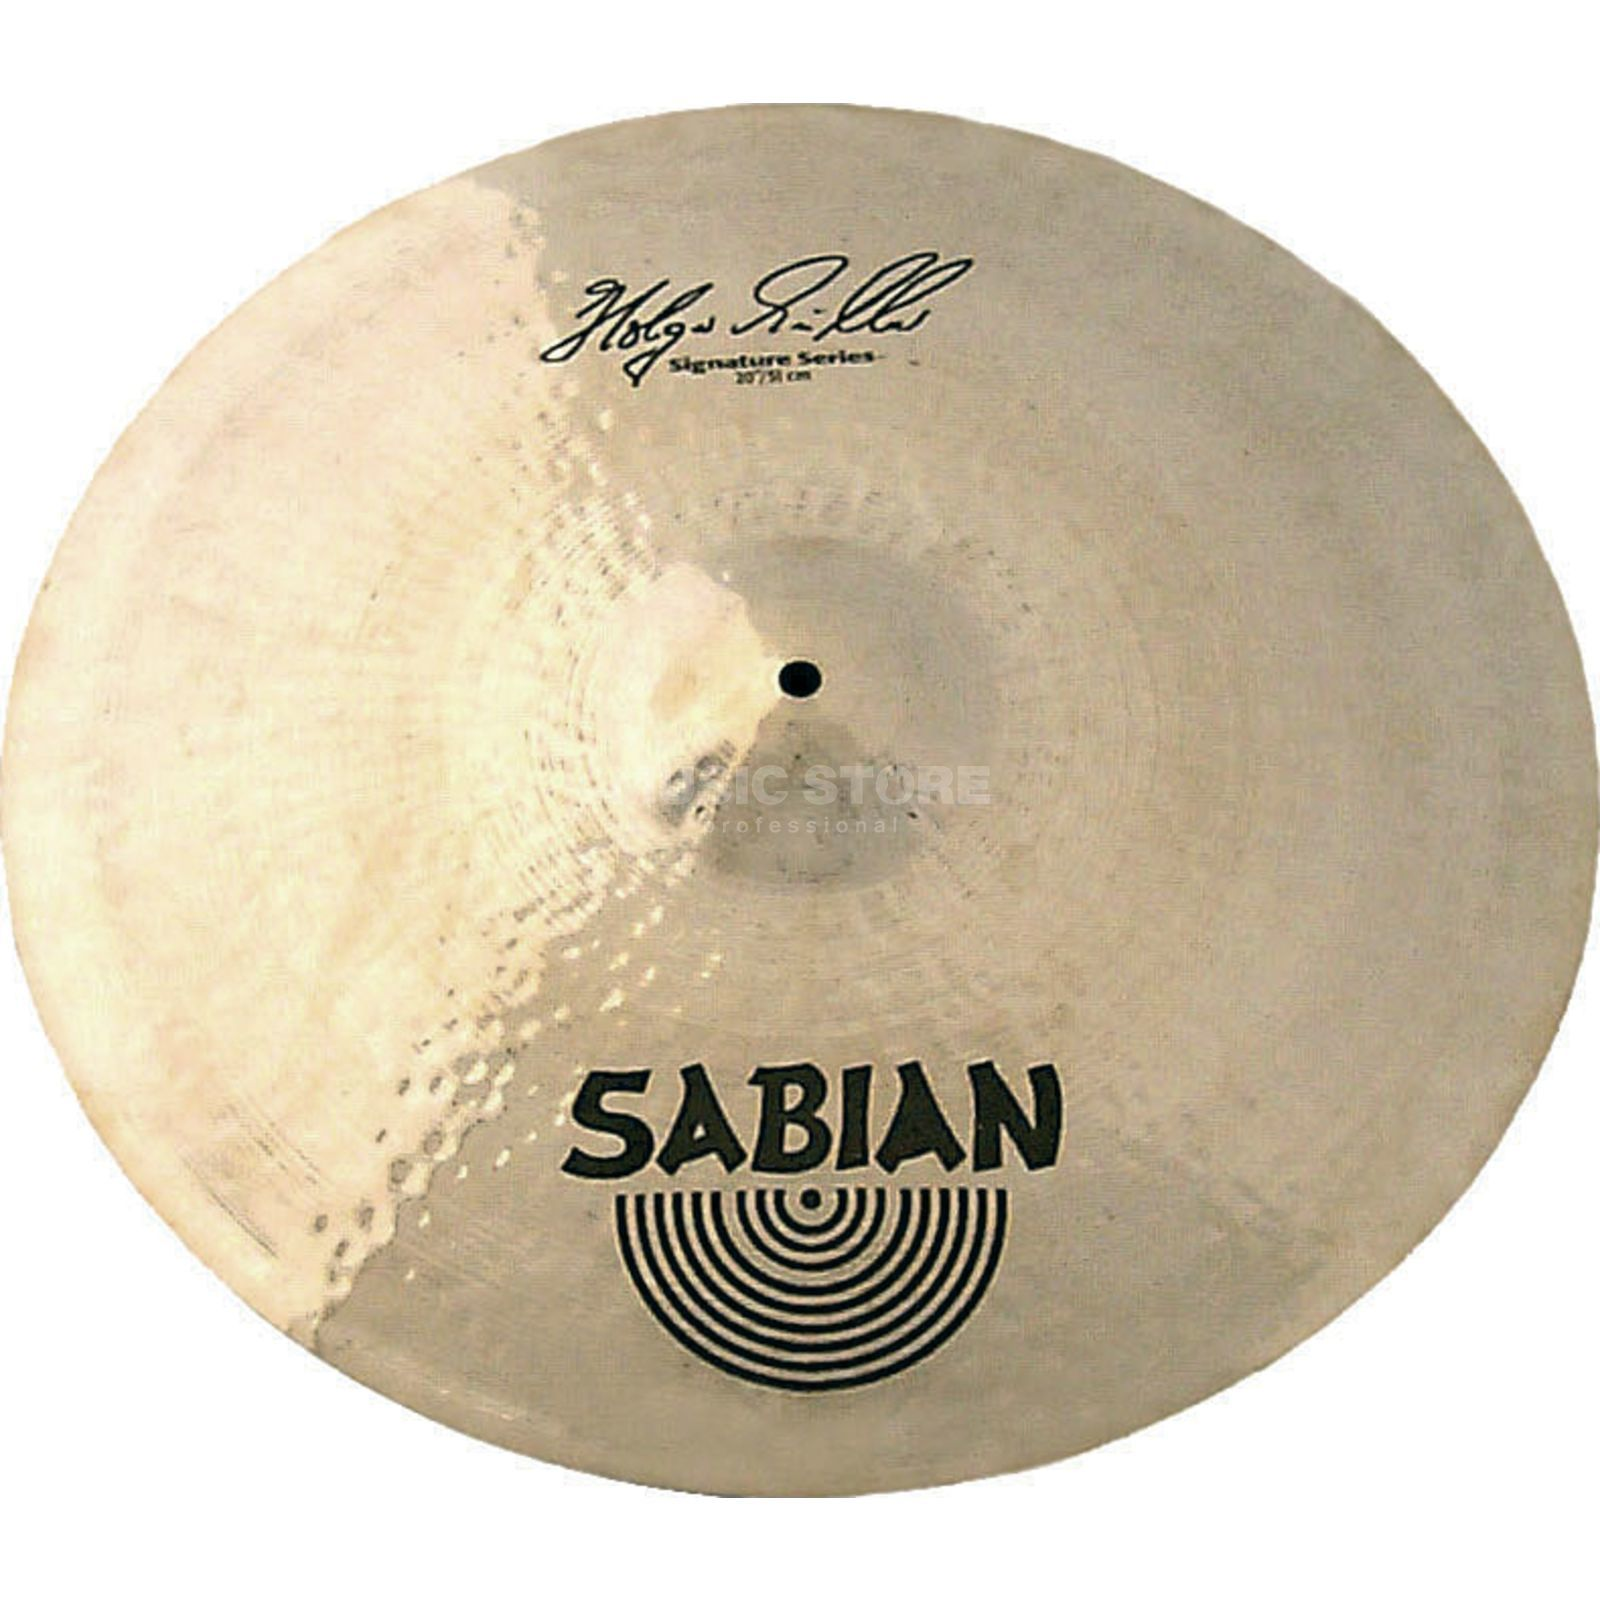 "Sabian HH Holger Müller Ride 20"", Signature, Brilliant Finish Produktbild"